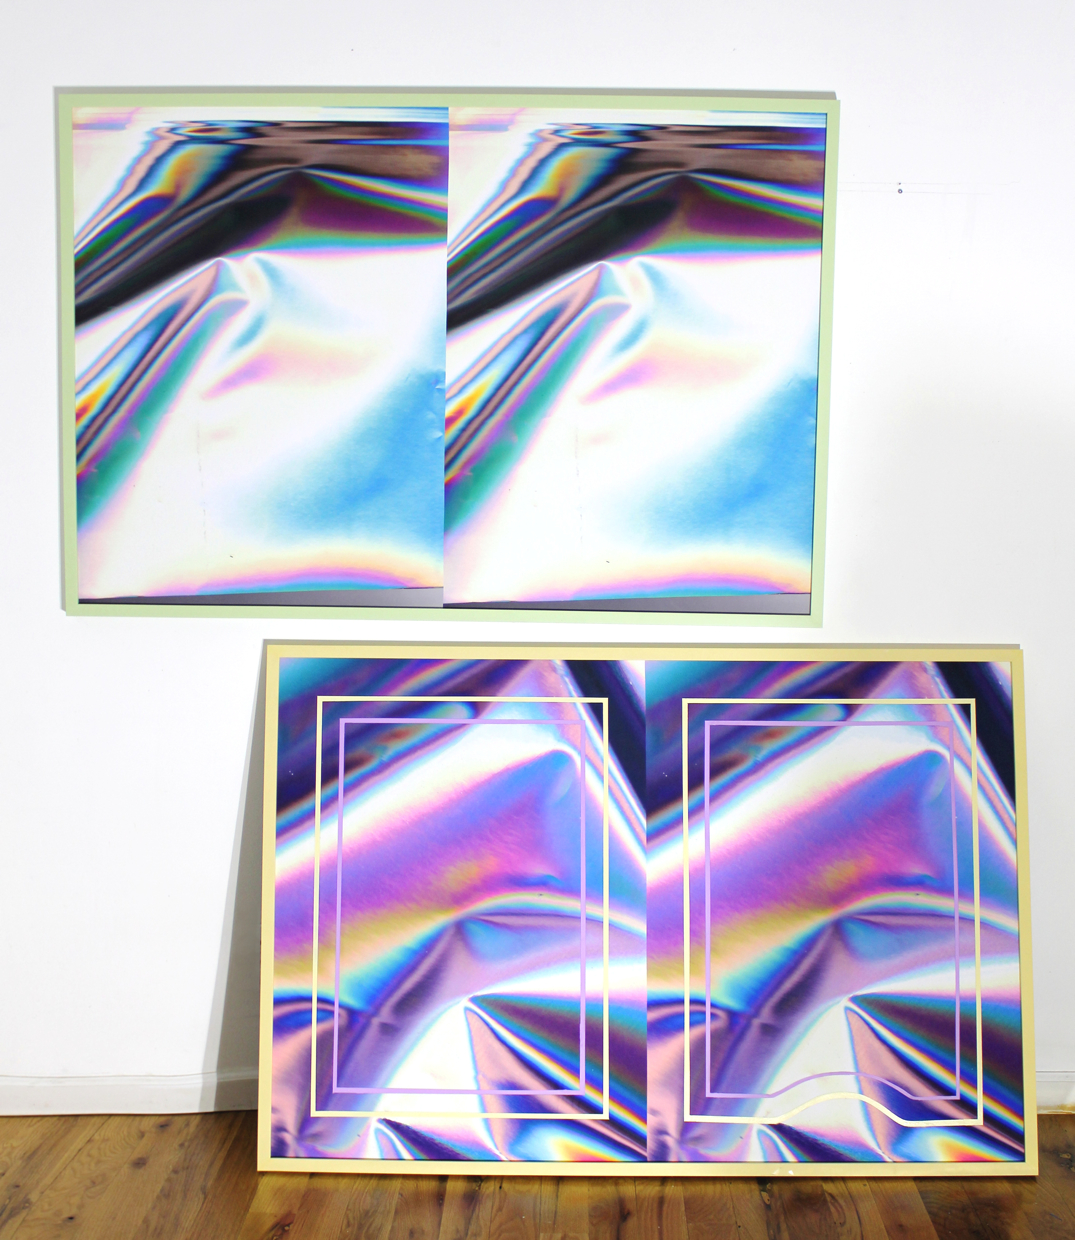 "anne vieux // double vision i & iii // acrylic paint on inkjet print // 32"" x 50"" each // 2015"